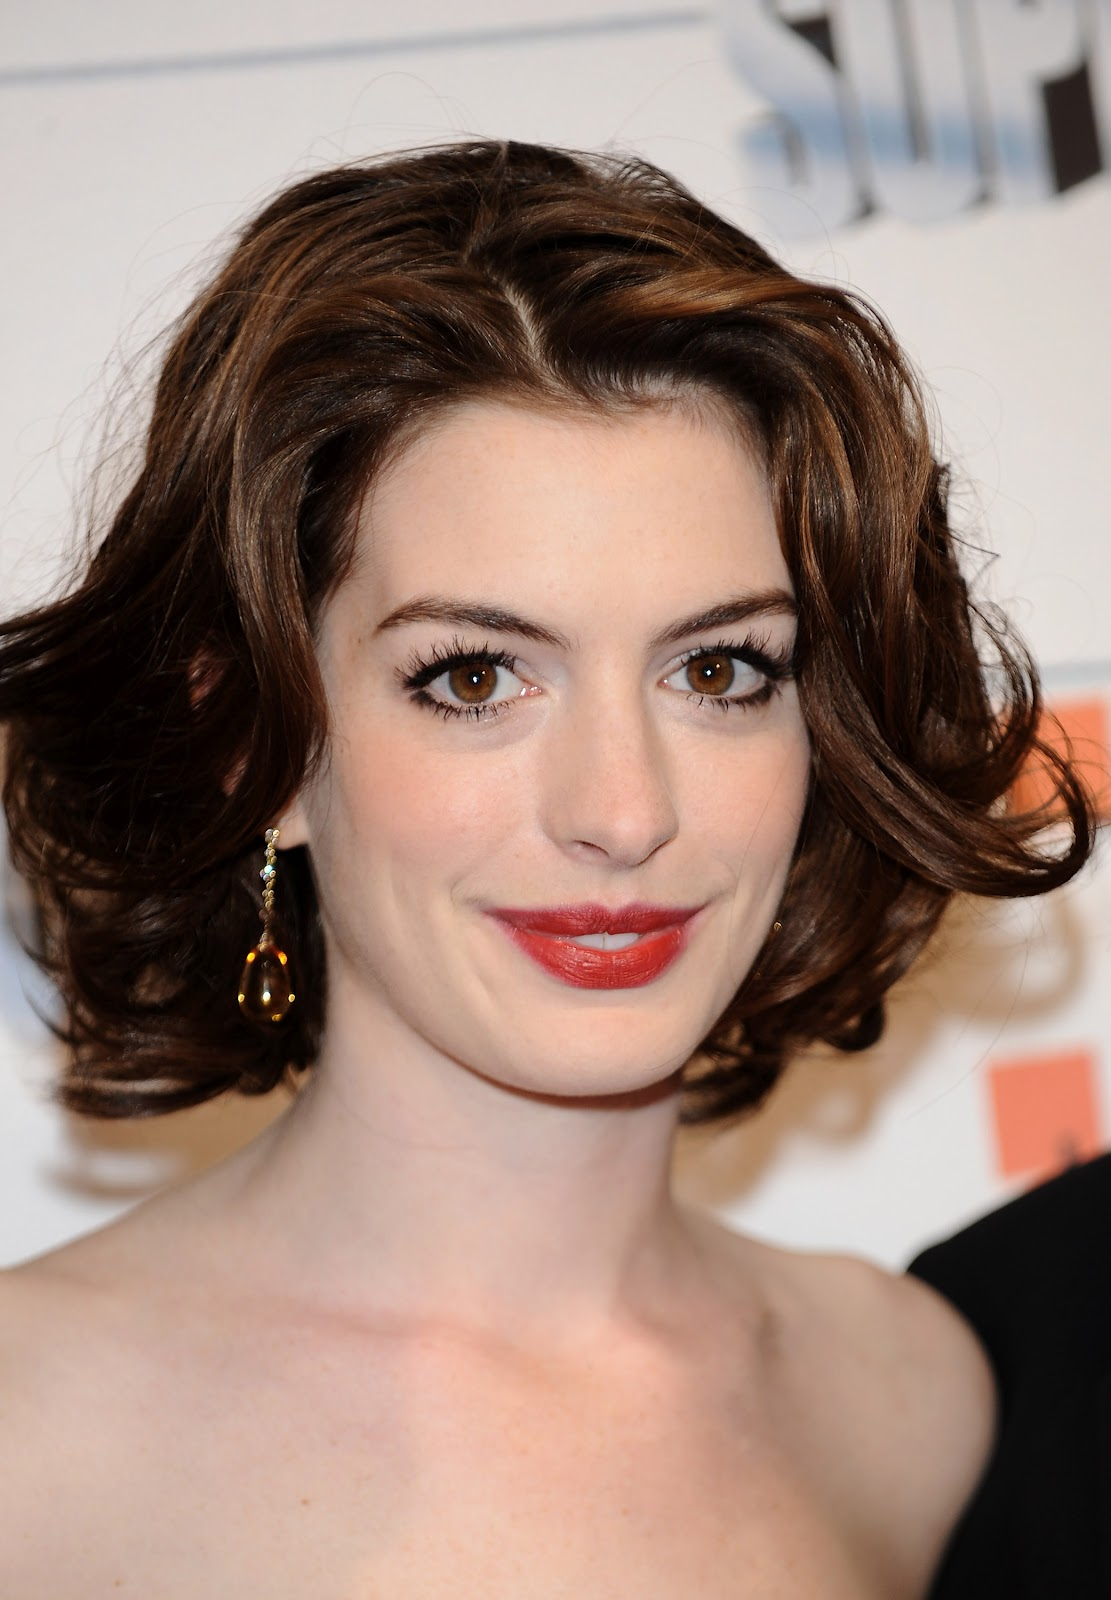 Anne Hathaway Pictures Gallery 18 Film Actresses